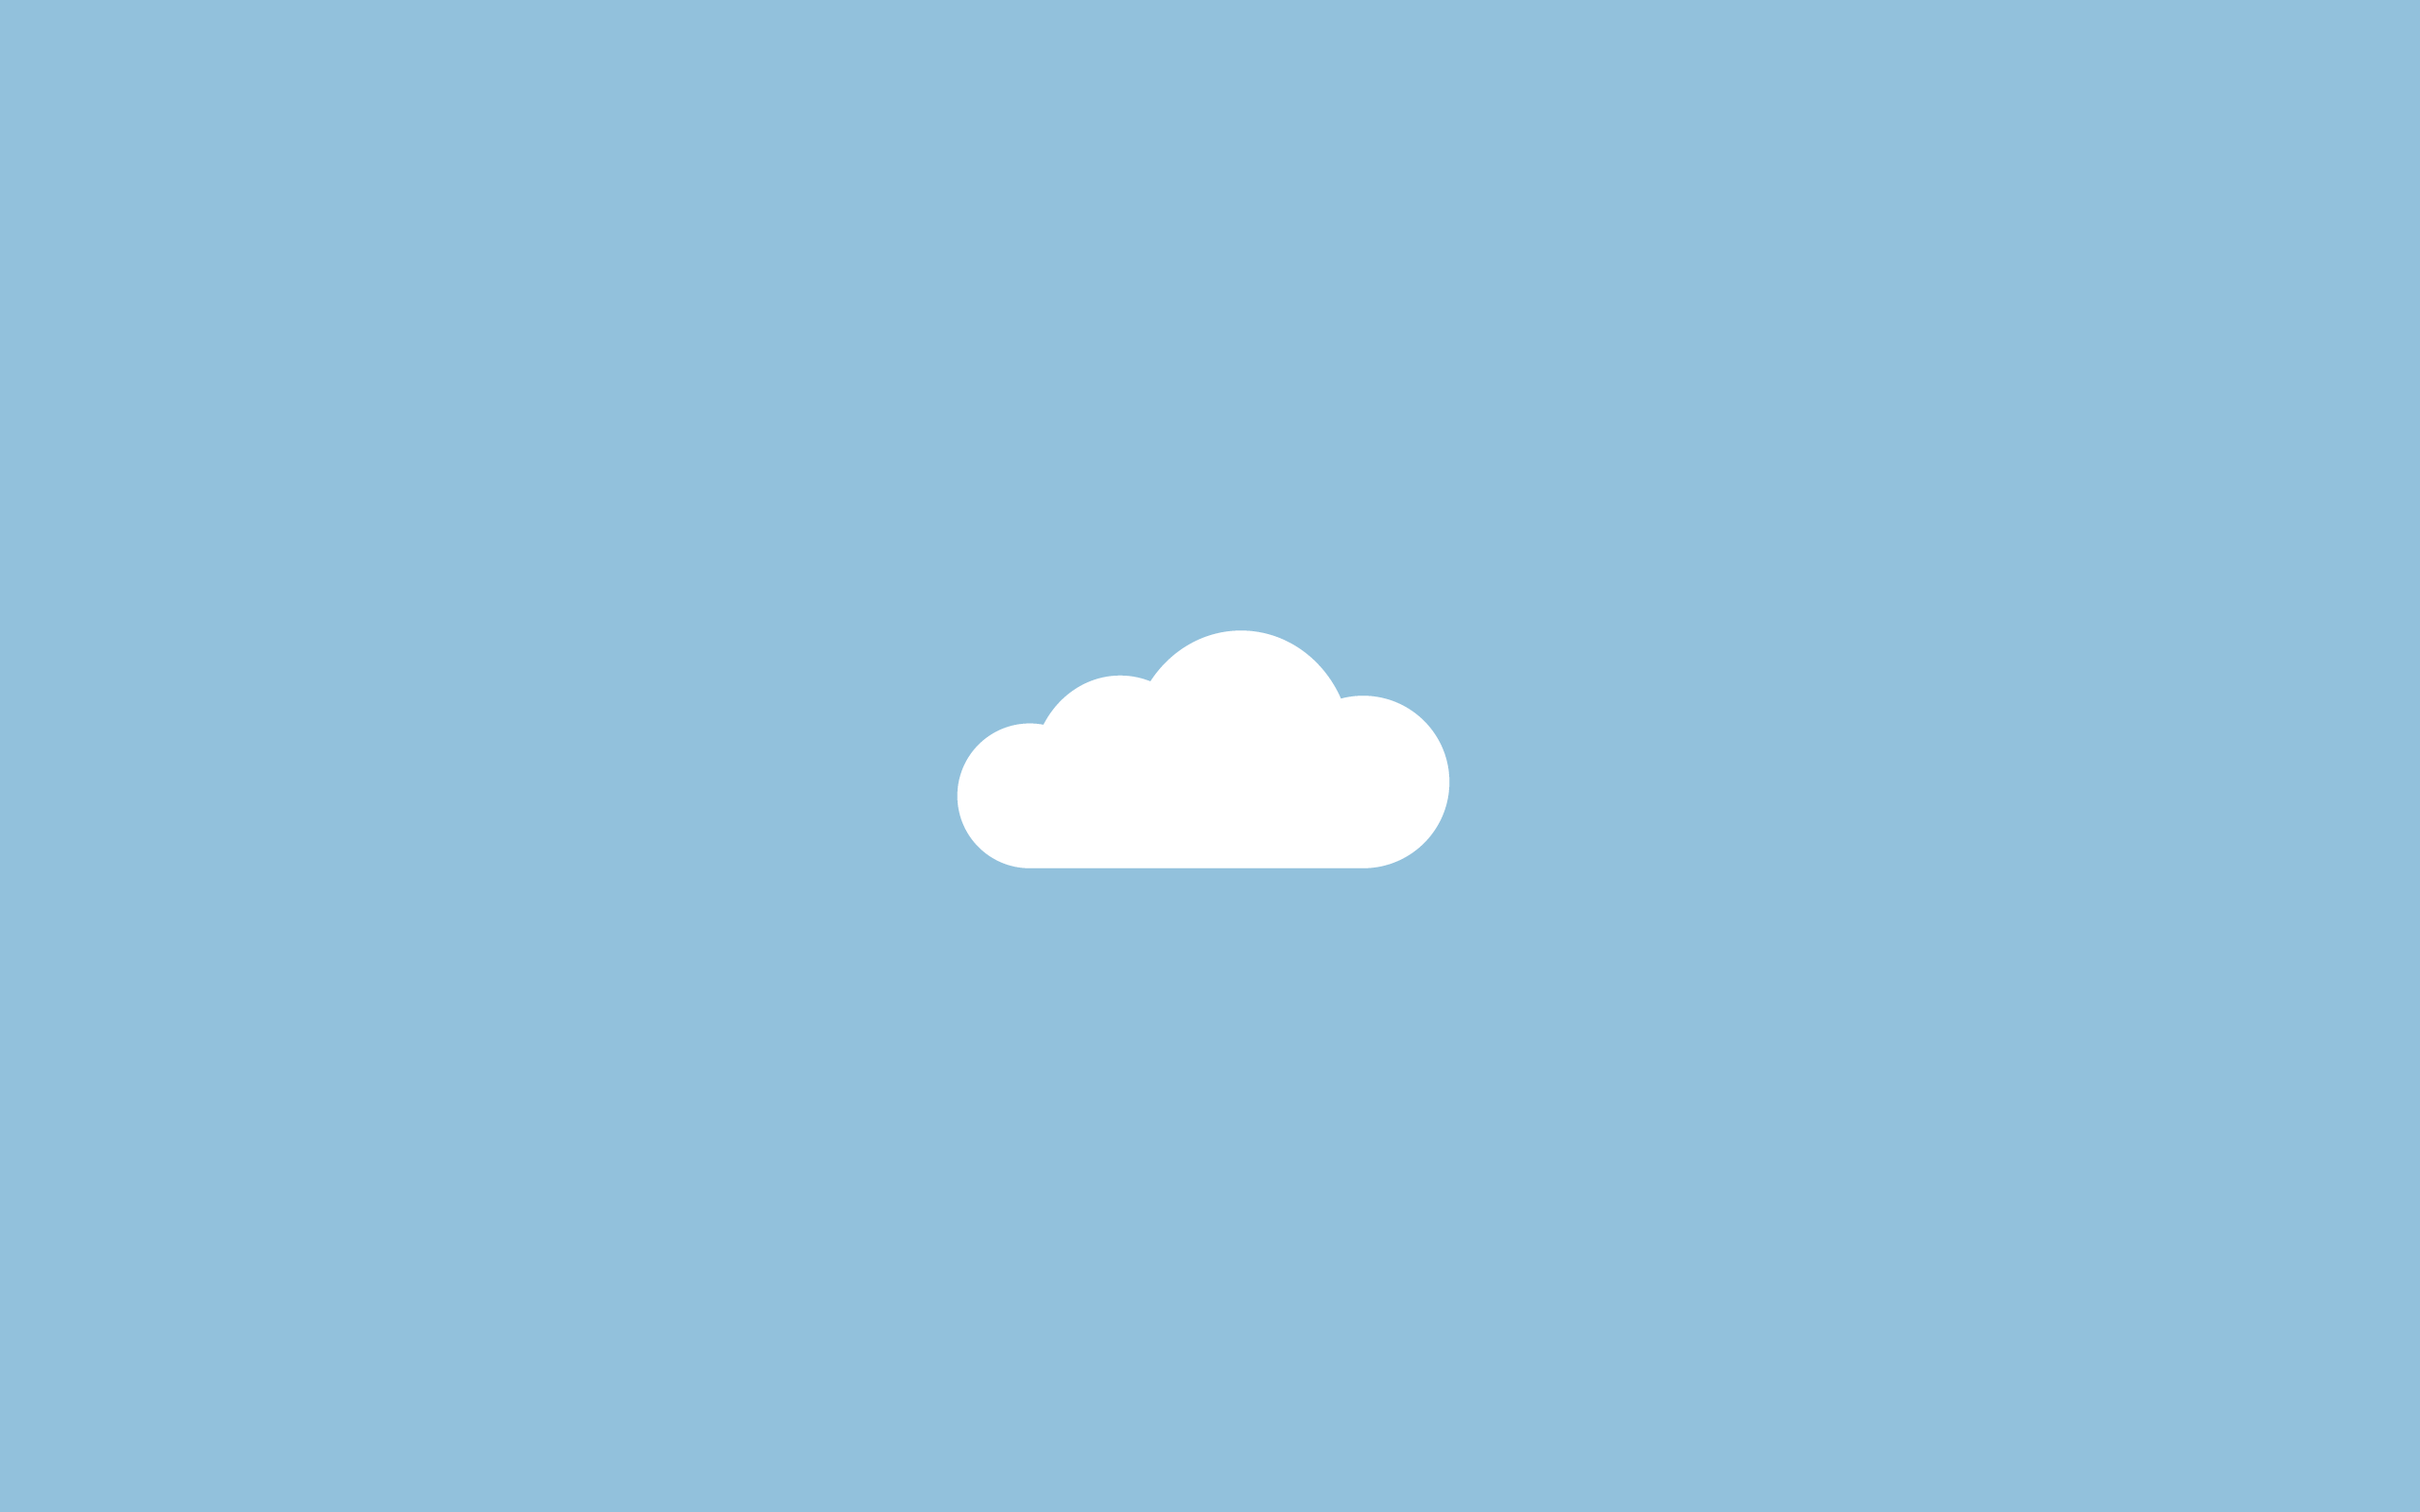 cloud on a blue background